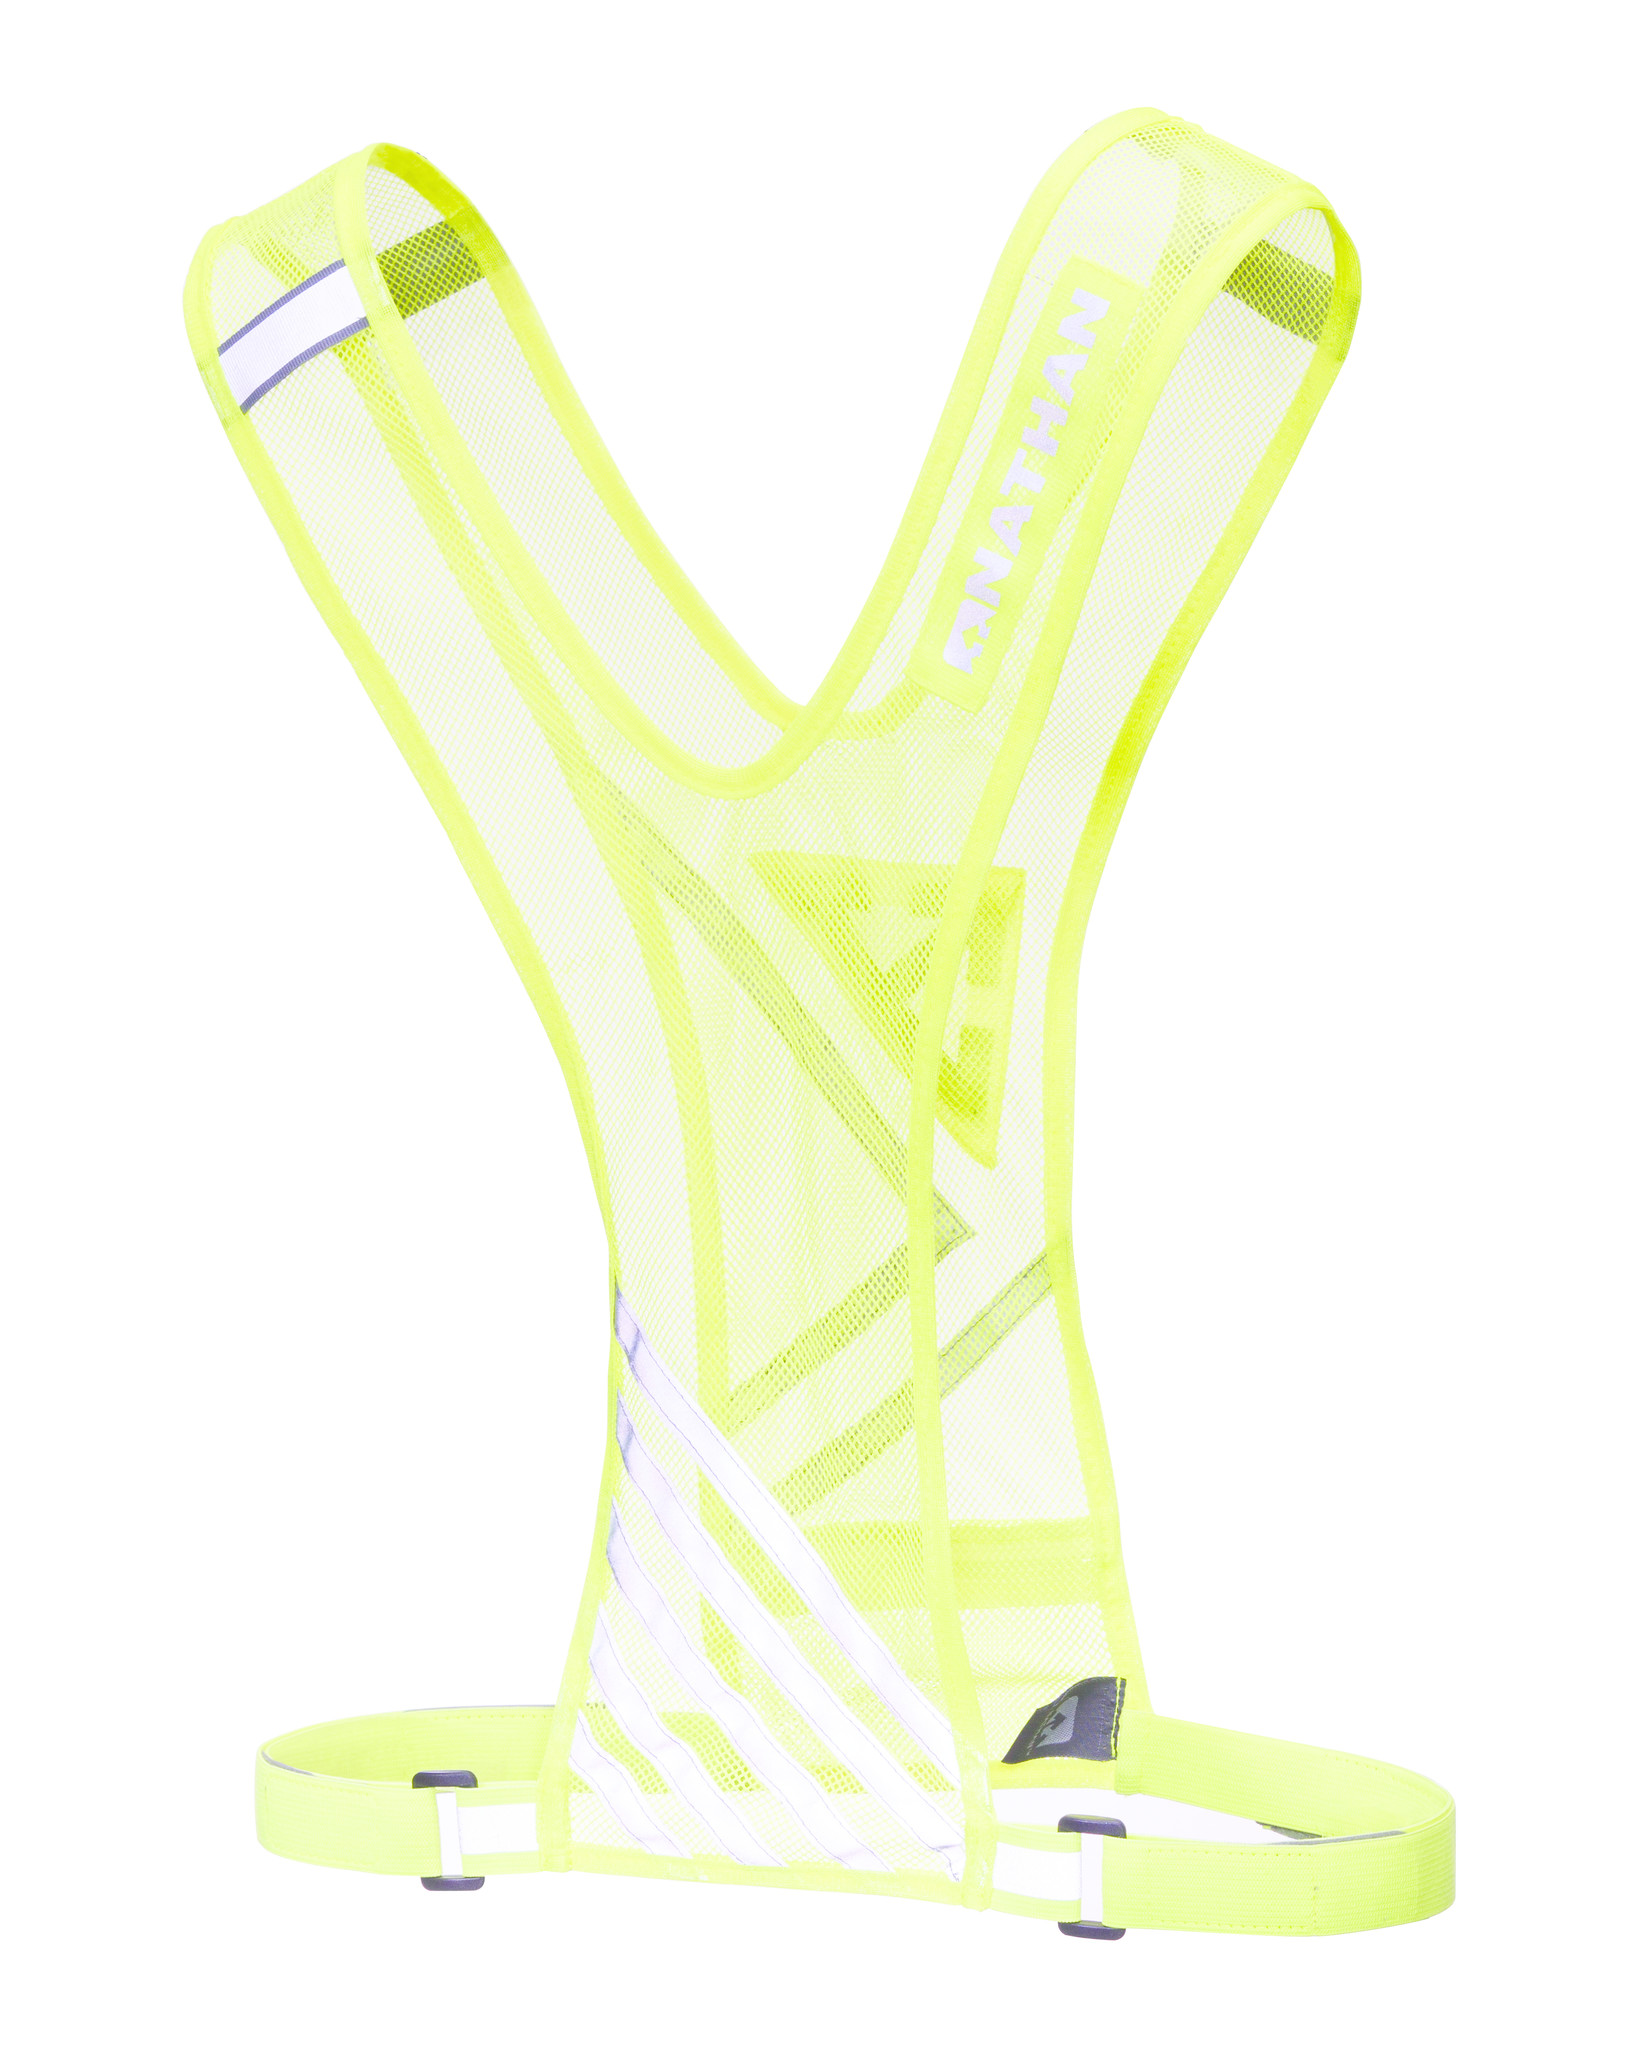 Nathan Nathan Bandolier Vest, Safety Yellow